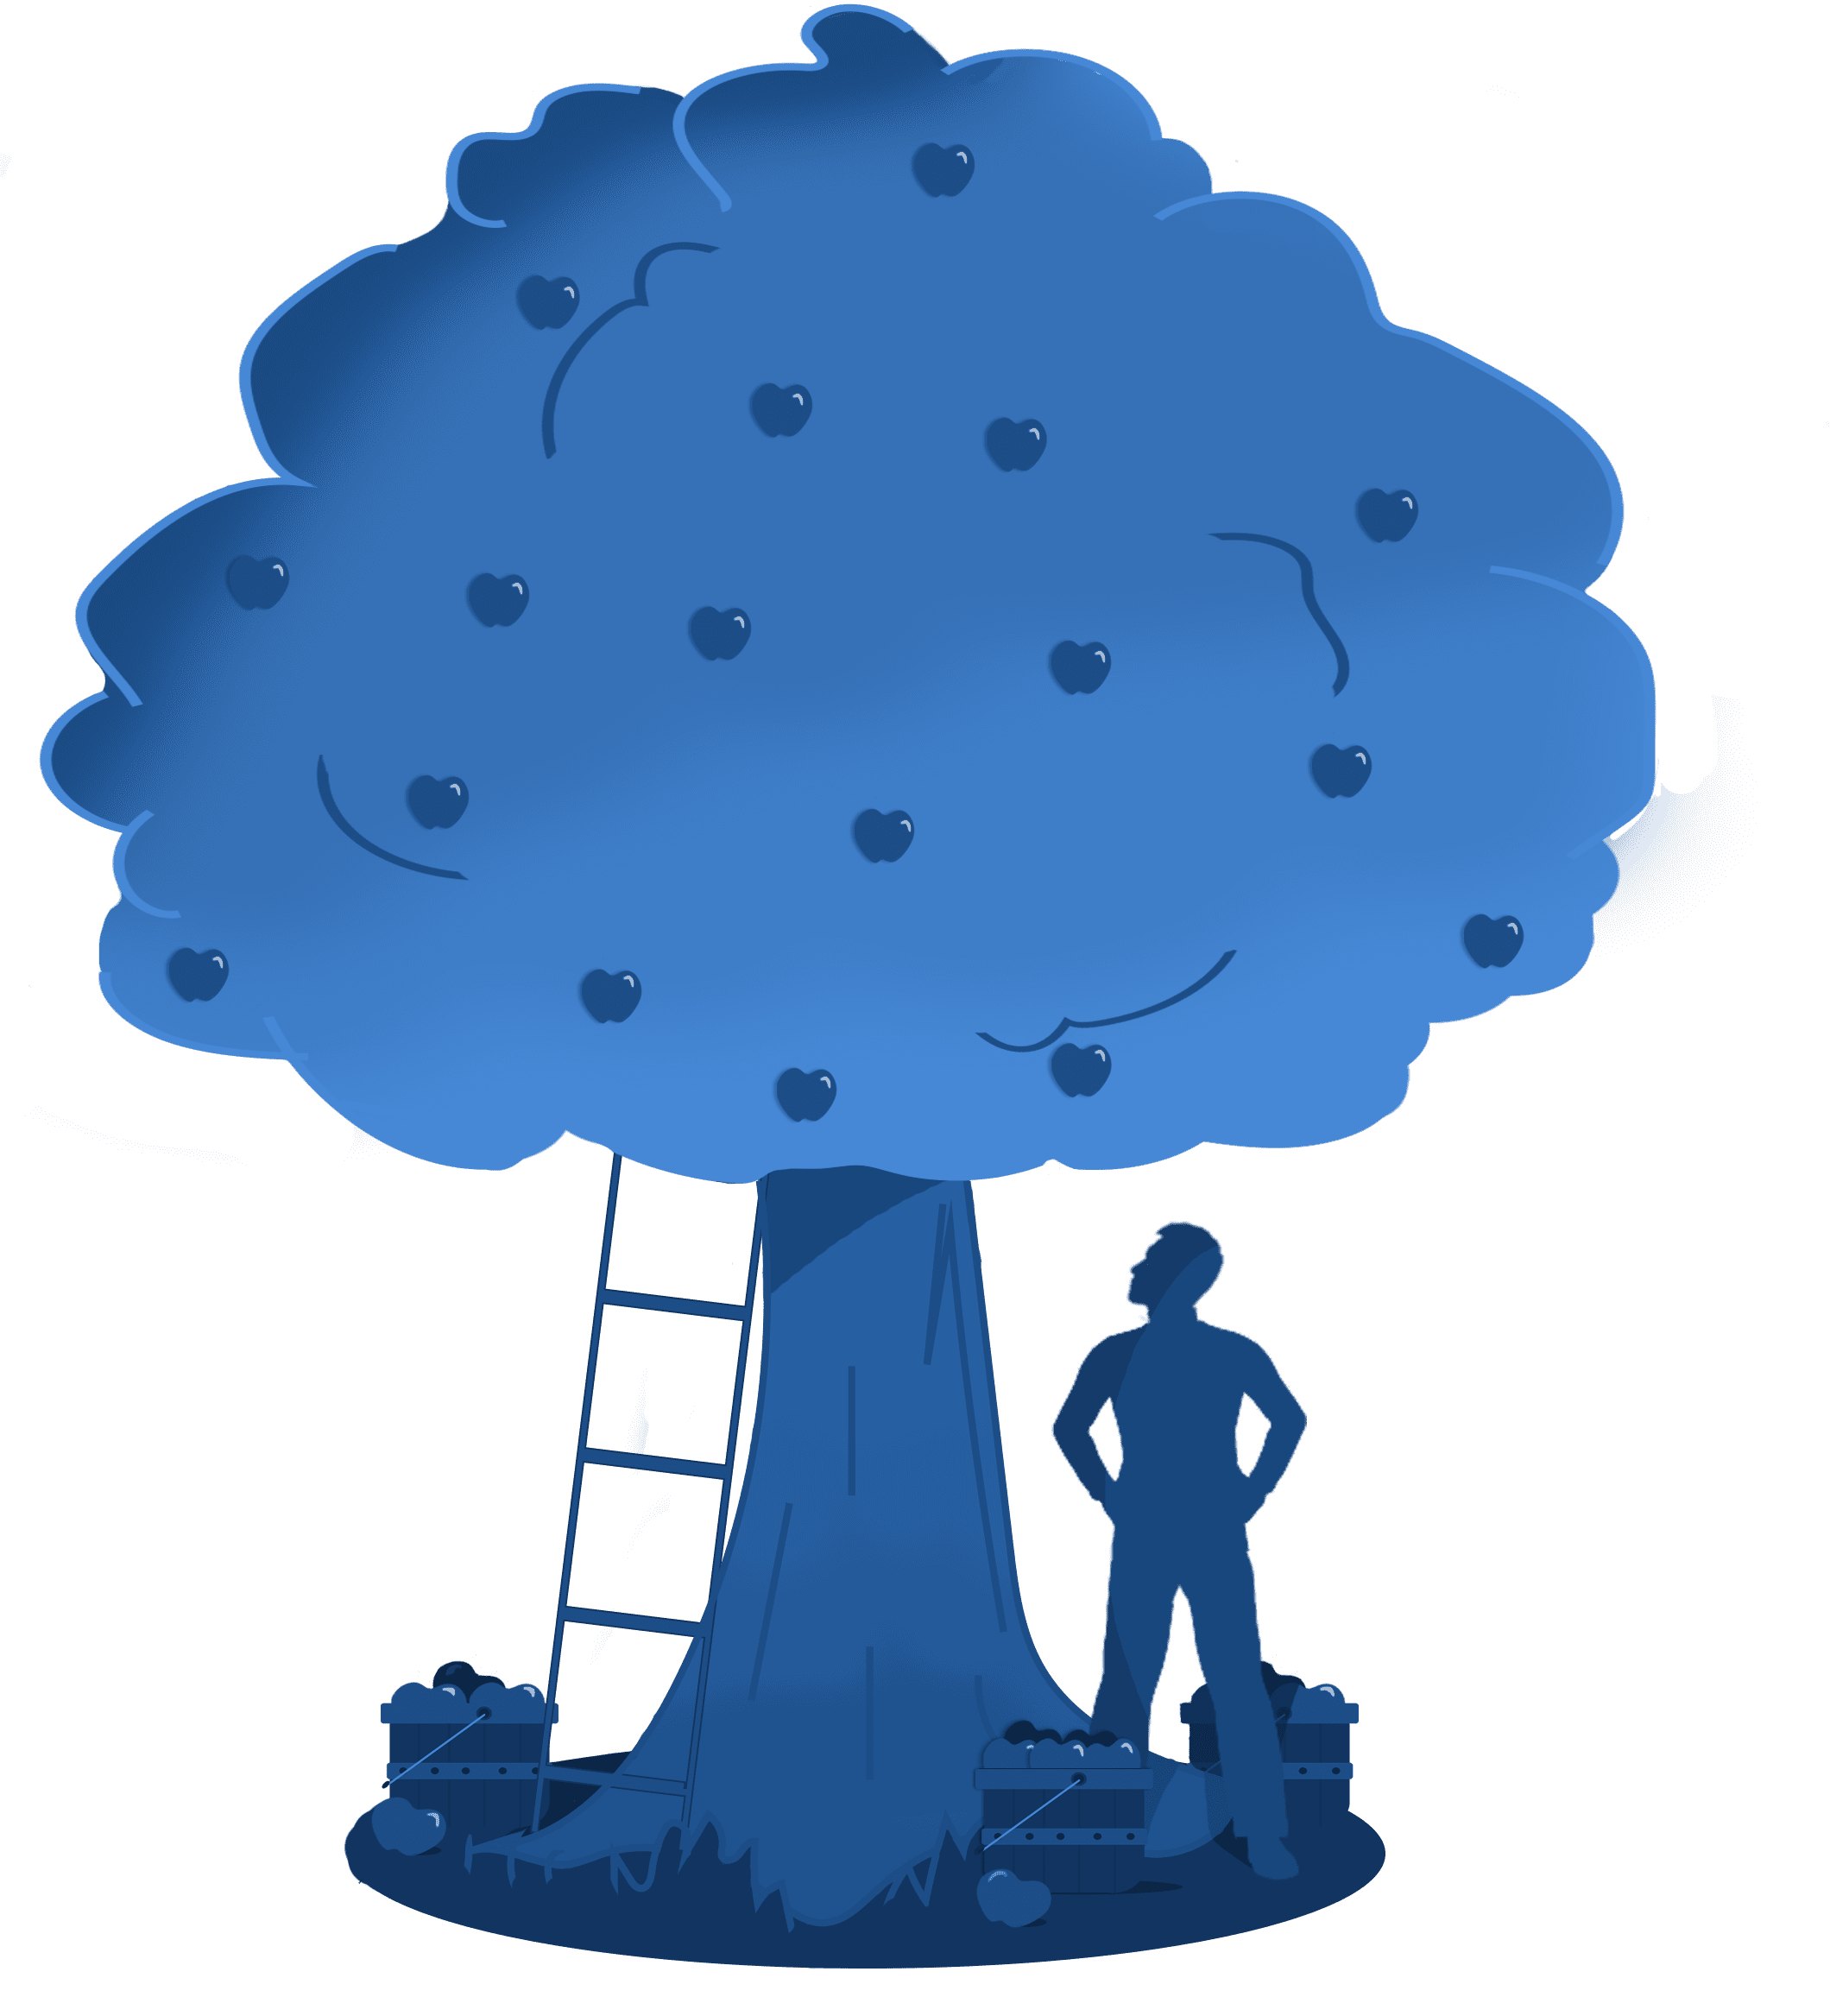 pricing-growth-tree-blue